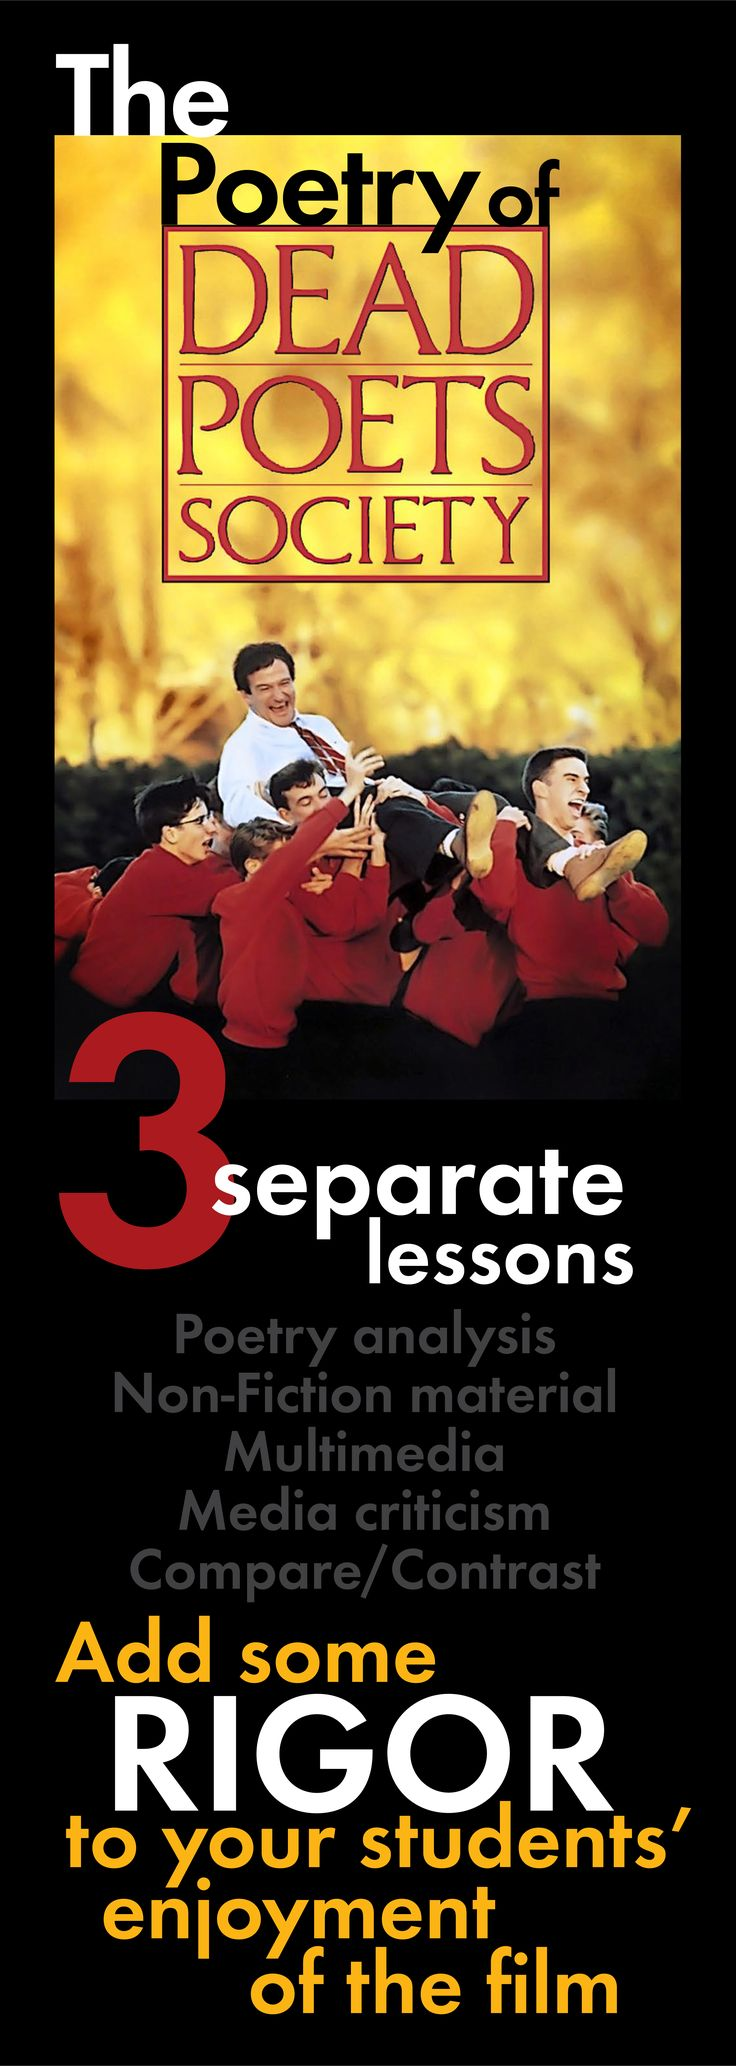 dead poets society notes essay example Surround yourself with good people in dead poets society one of the many themes is surrounding yourself with good friends in dead poet society  example of the.